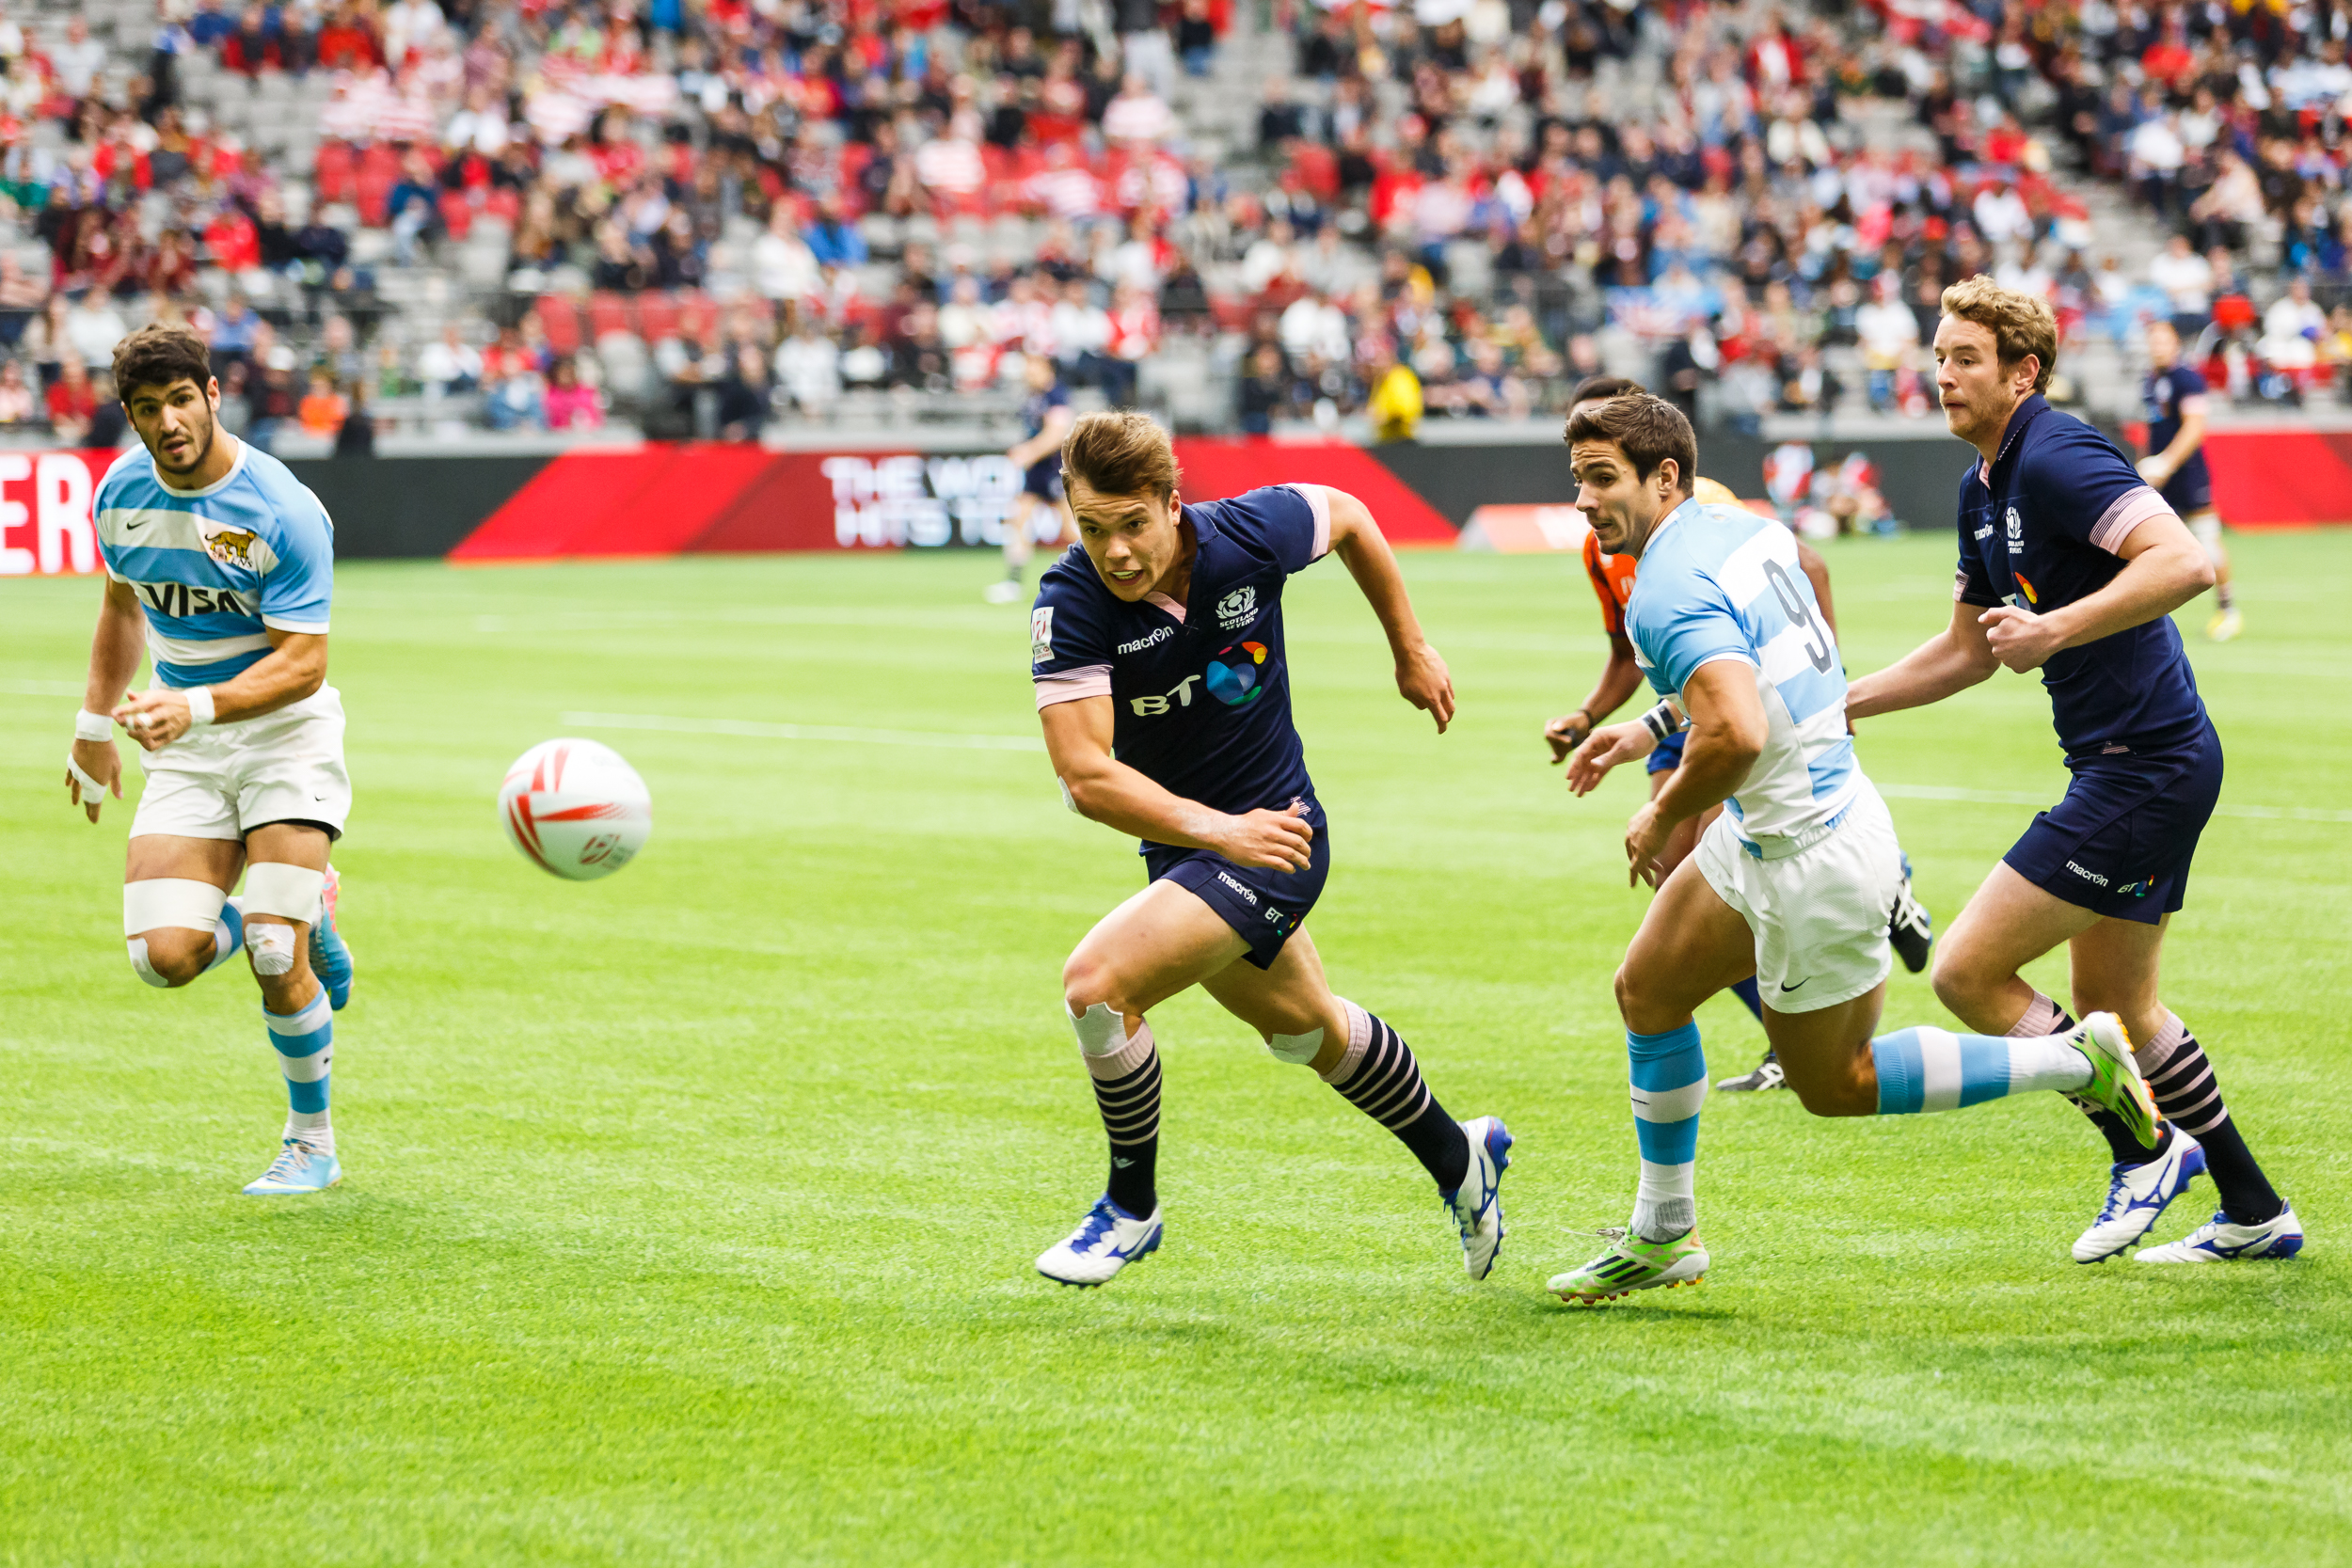 Canada-Rugby-Sevens-photo-9.jpg